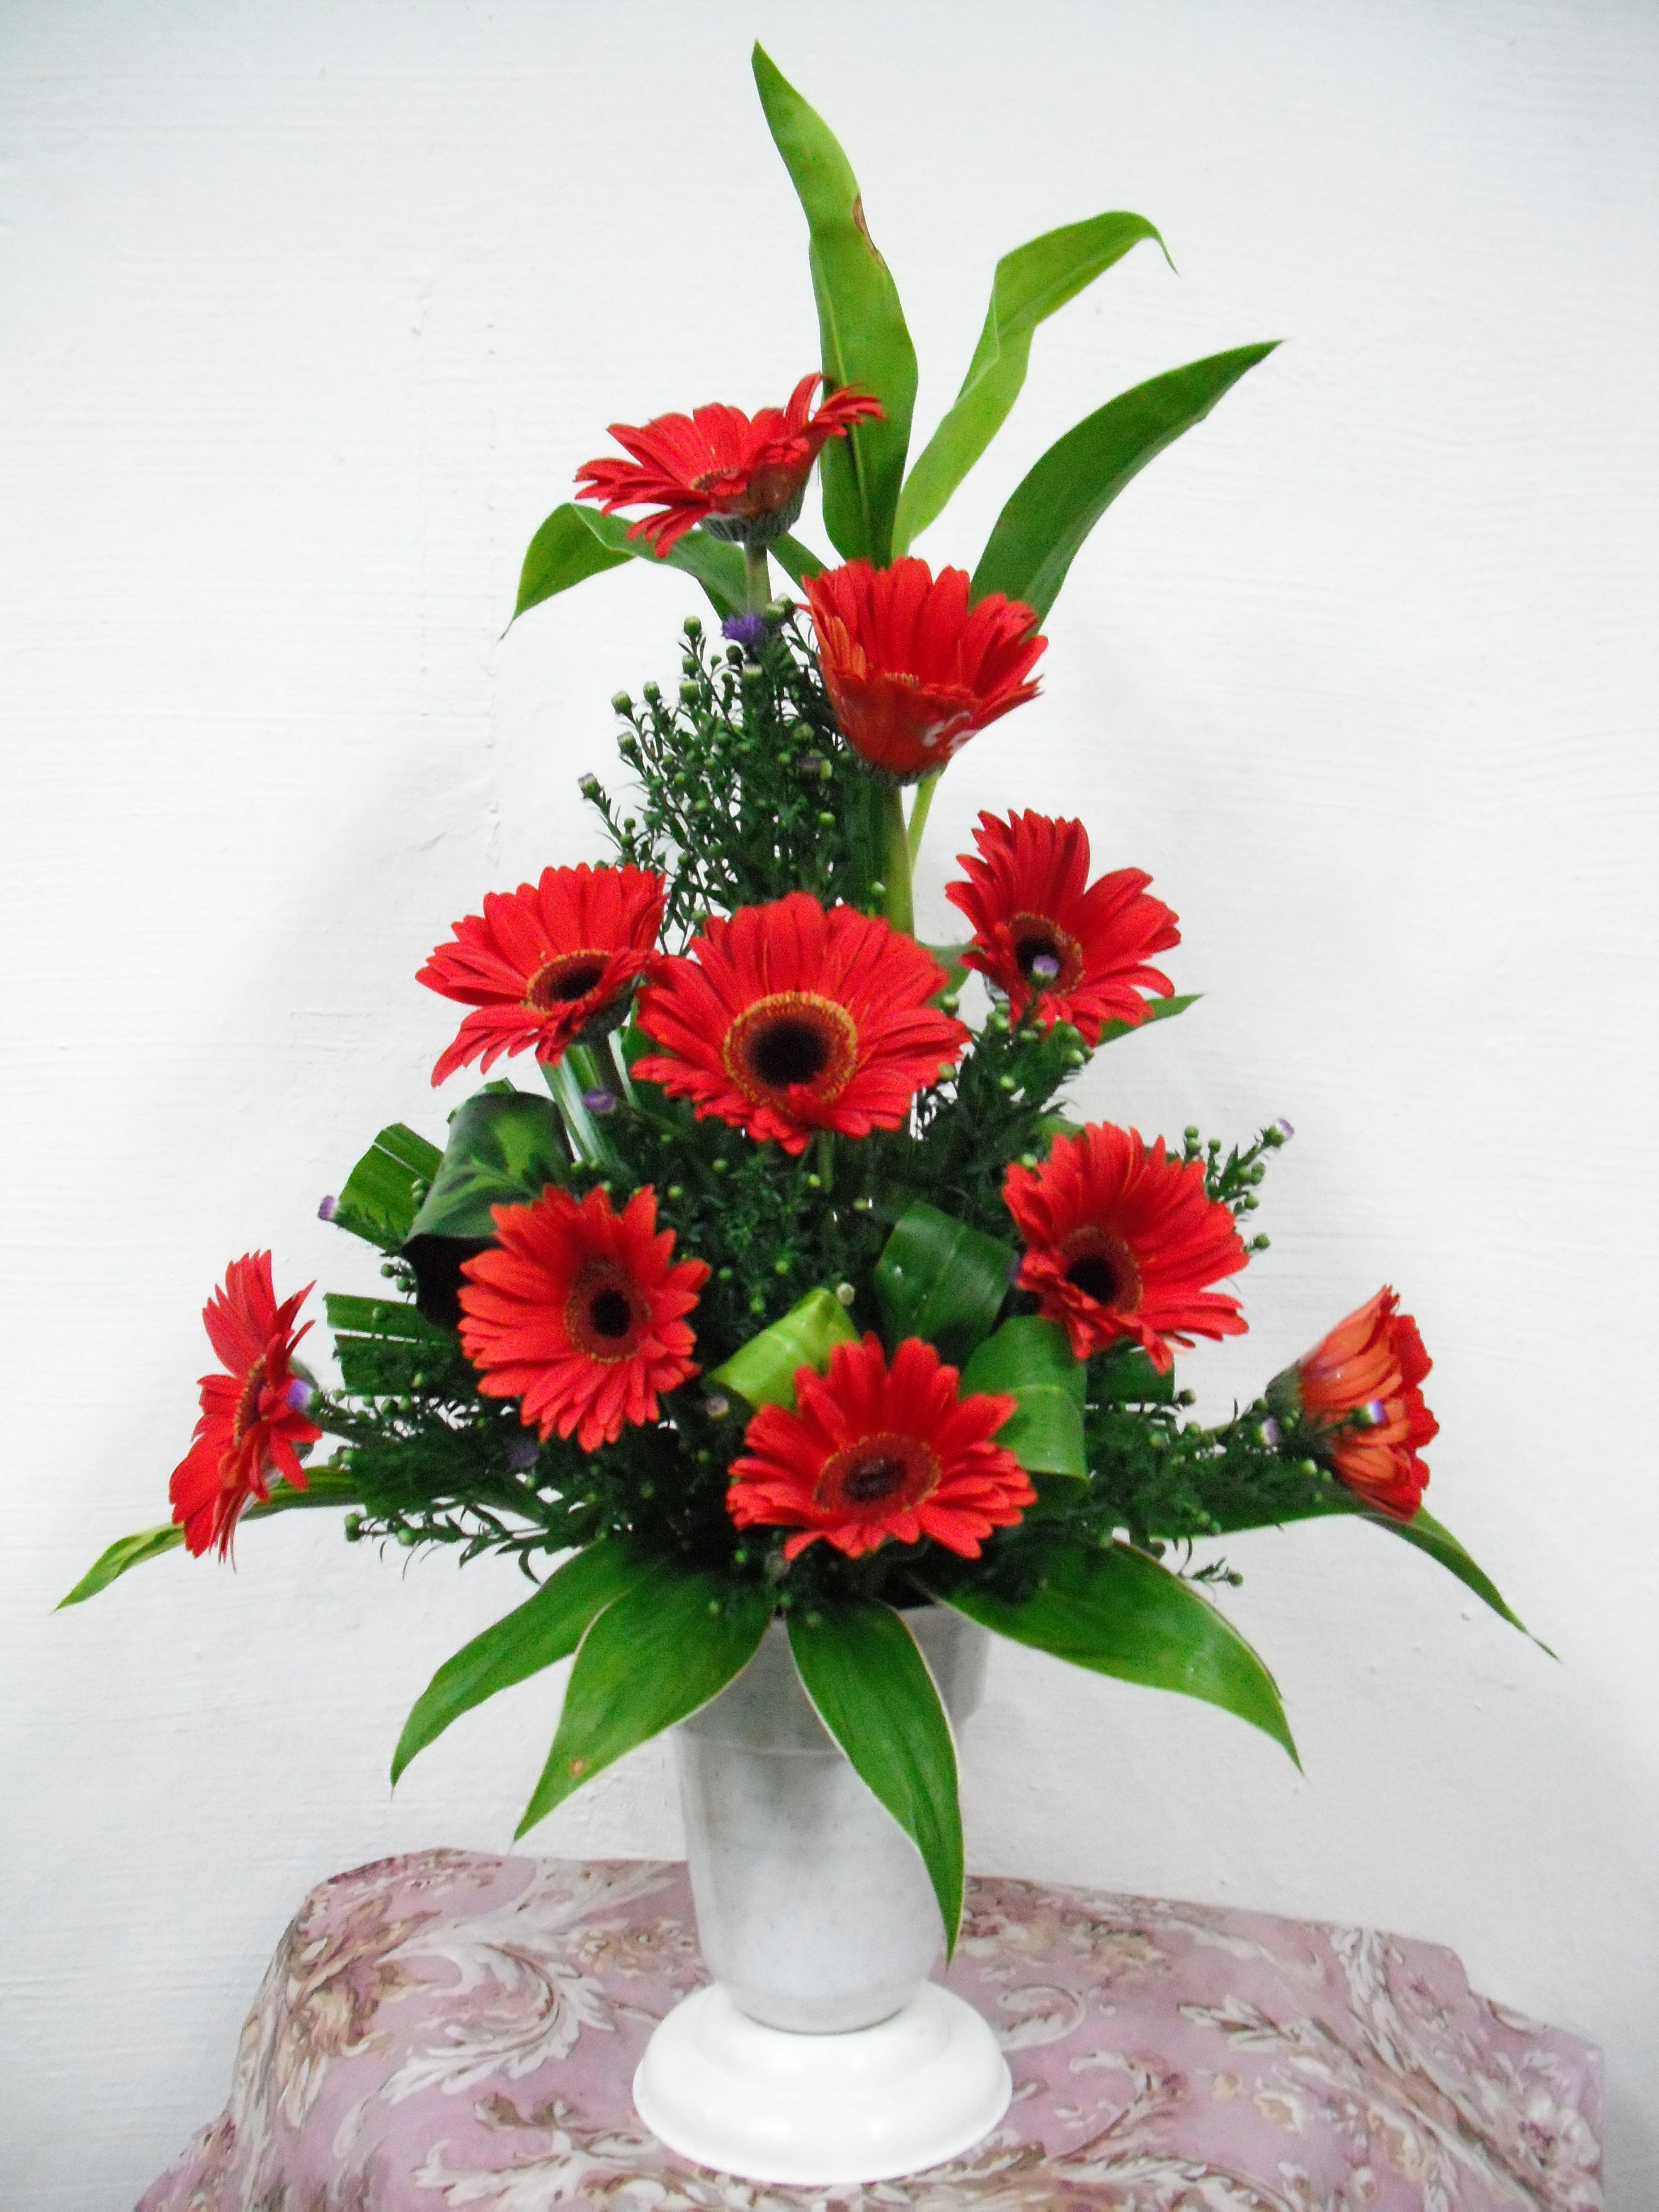 Red Floral Arrangement Weddings Cheap Wedding Reception Ideas Homemade